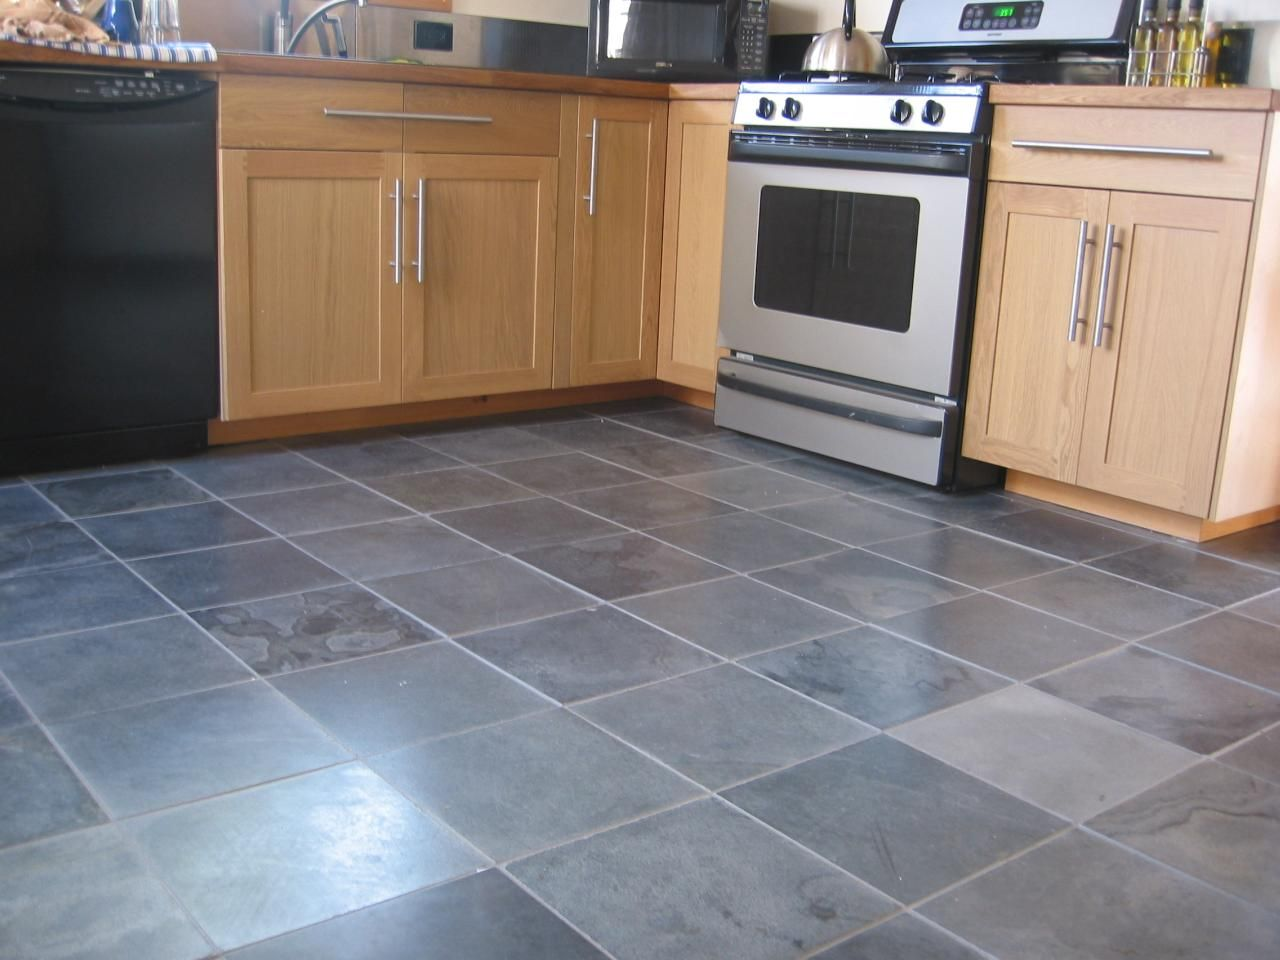 Porcelain Tile For Kitchen Floors 1000 Images About Tile Floors On Pinterest Wild Rice Tile And